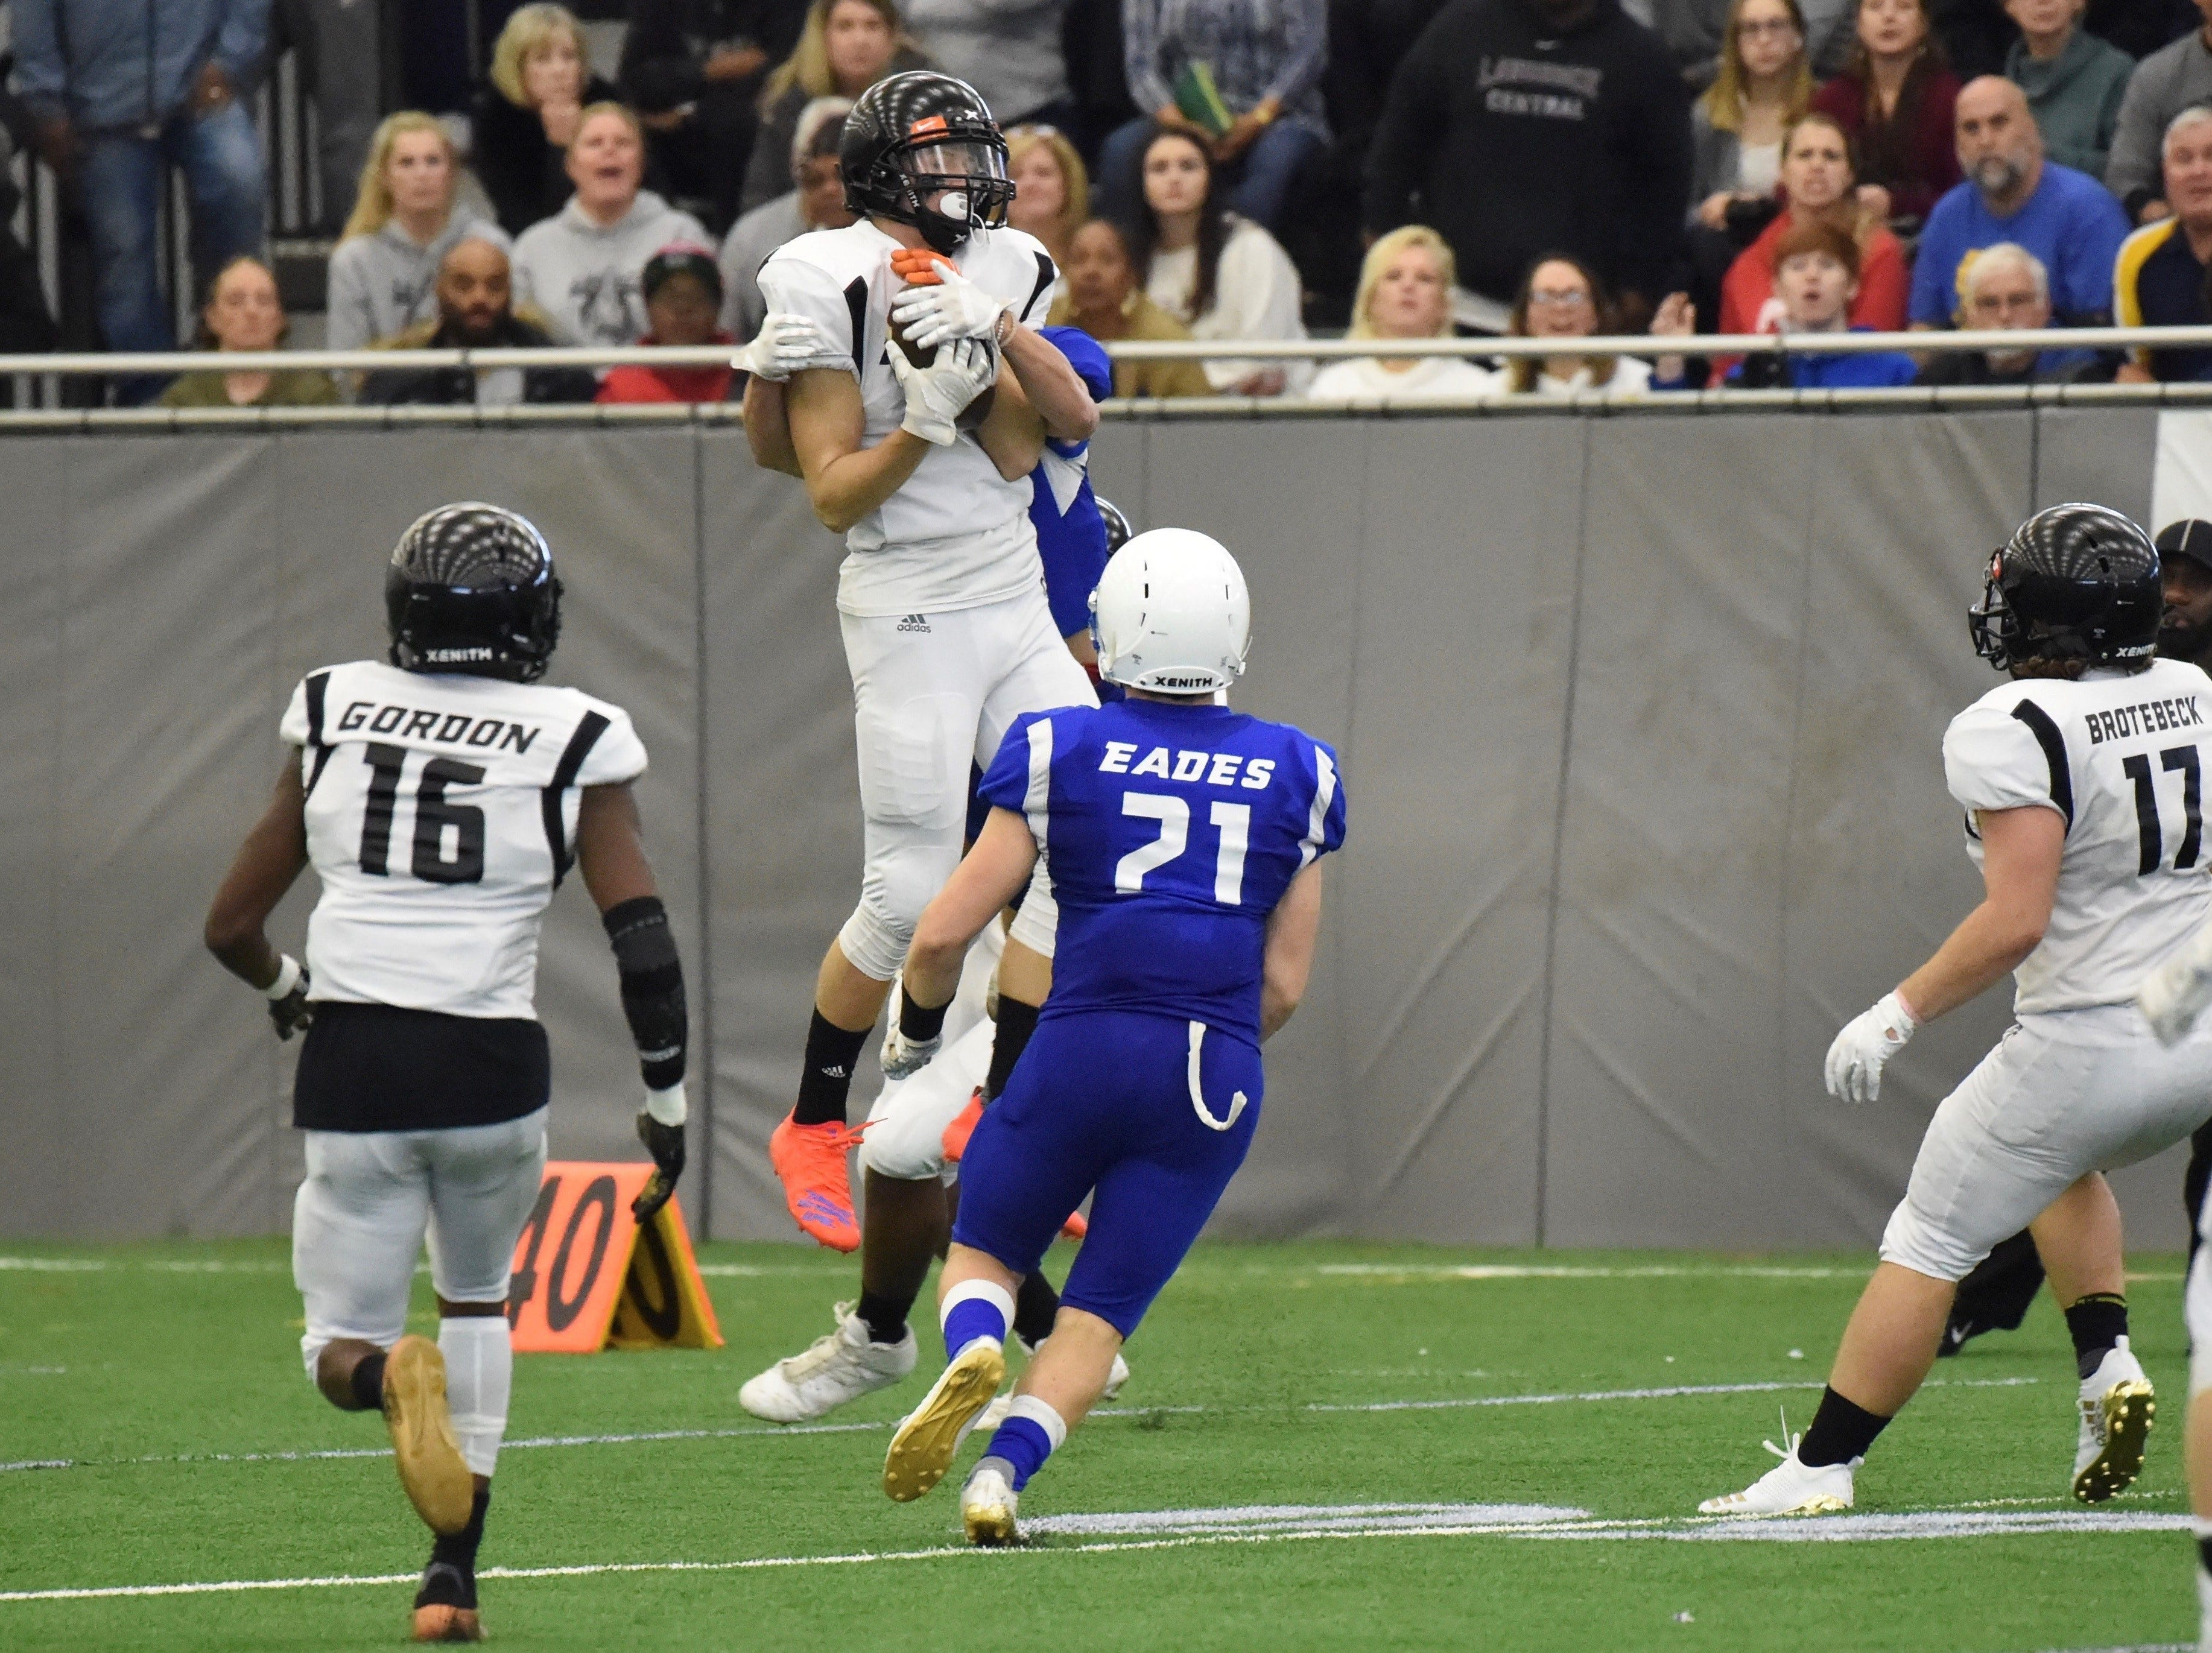 Brighton's Jack Krause jumps up to secure an interception for Team Legends in the final minutes of Sunday's all-star game at Legacy Center Sports Complex. Closing in on Krause is Team Legacy's Nathan Eades (Howell). Also shown are Carte'yae Gordon (Lansing Sexton) and Ryder Brotebeck (Grand Blanc).